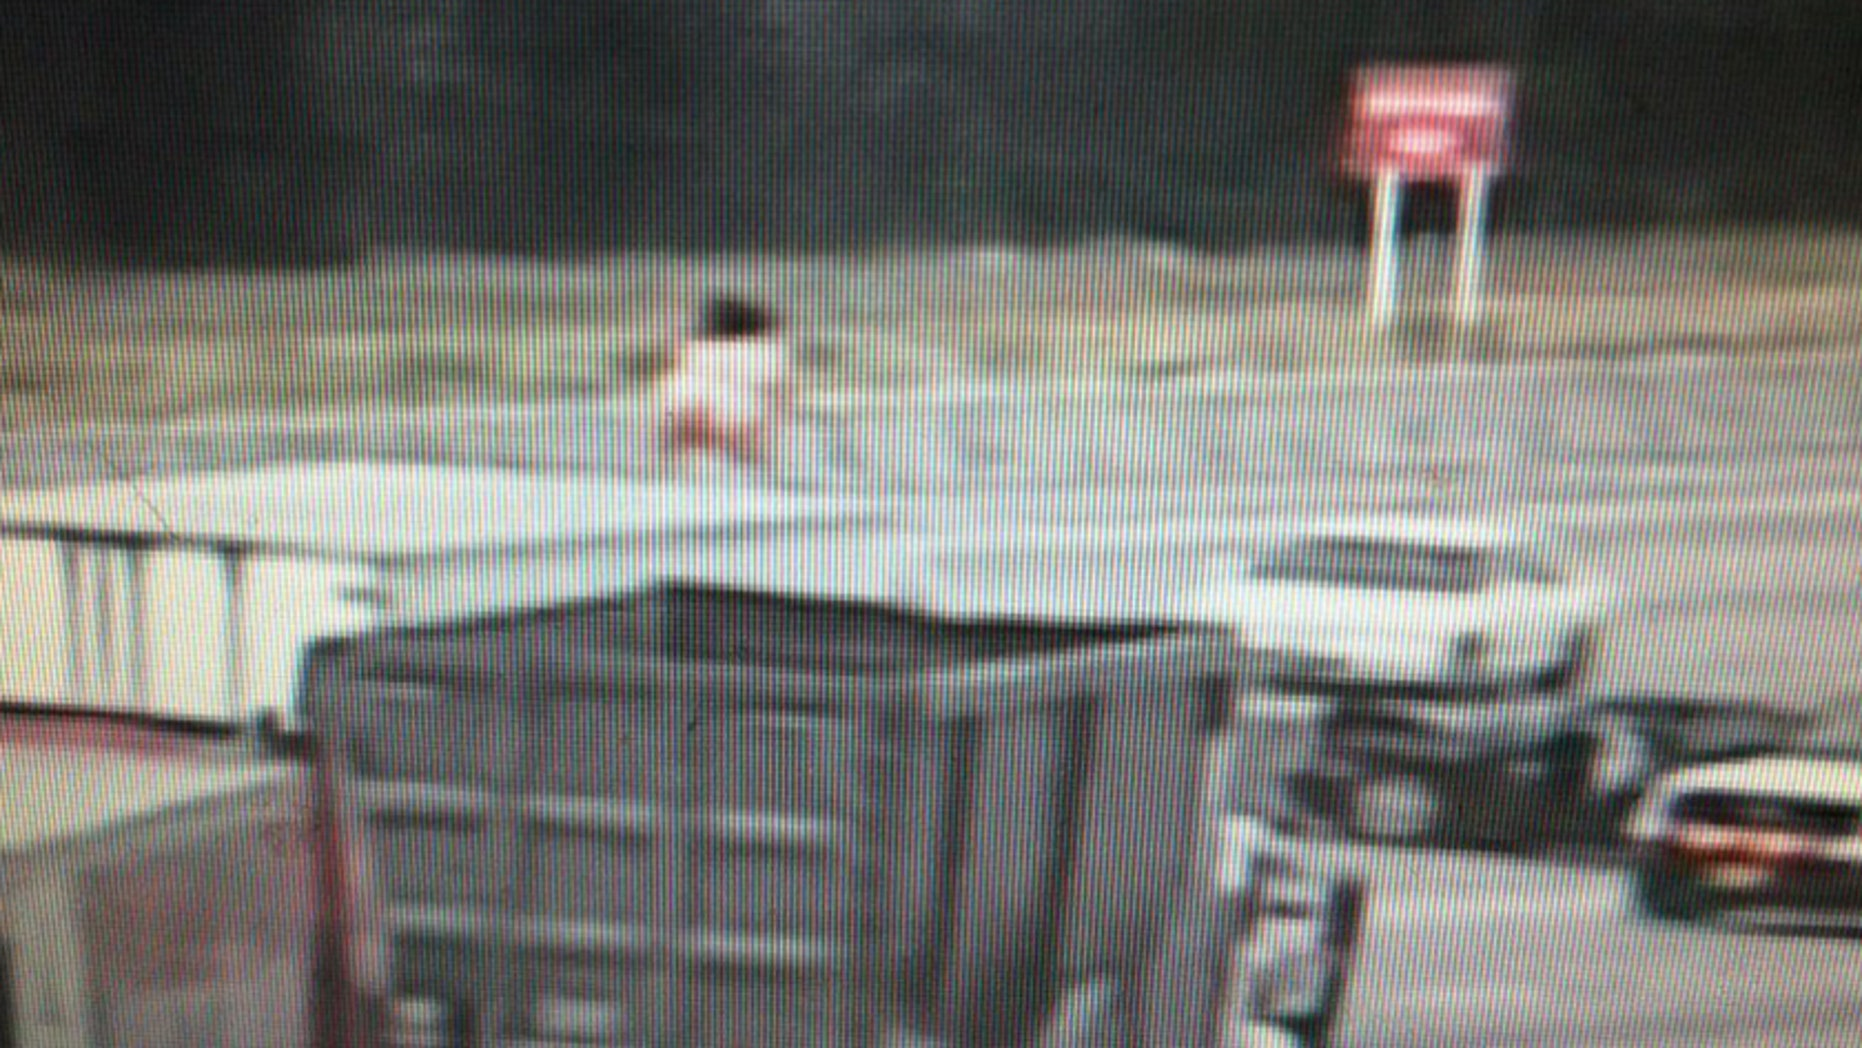 Naked woman dancing on top of truck causes Texas-sized